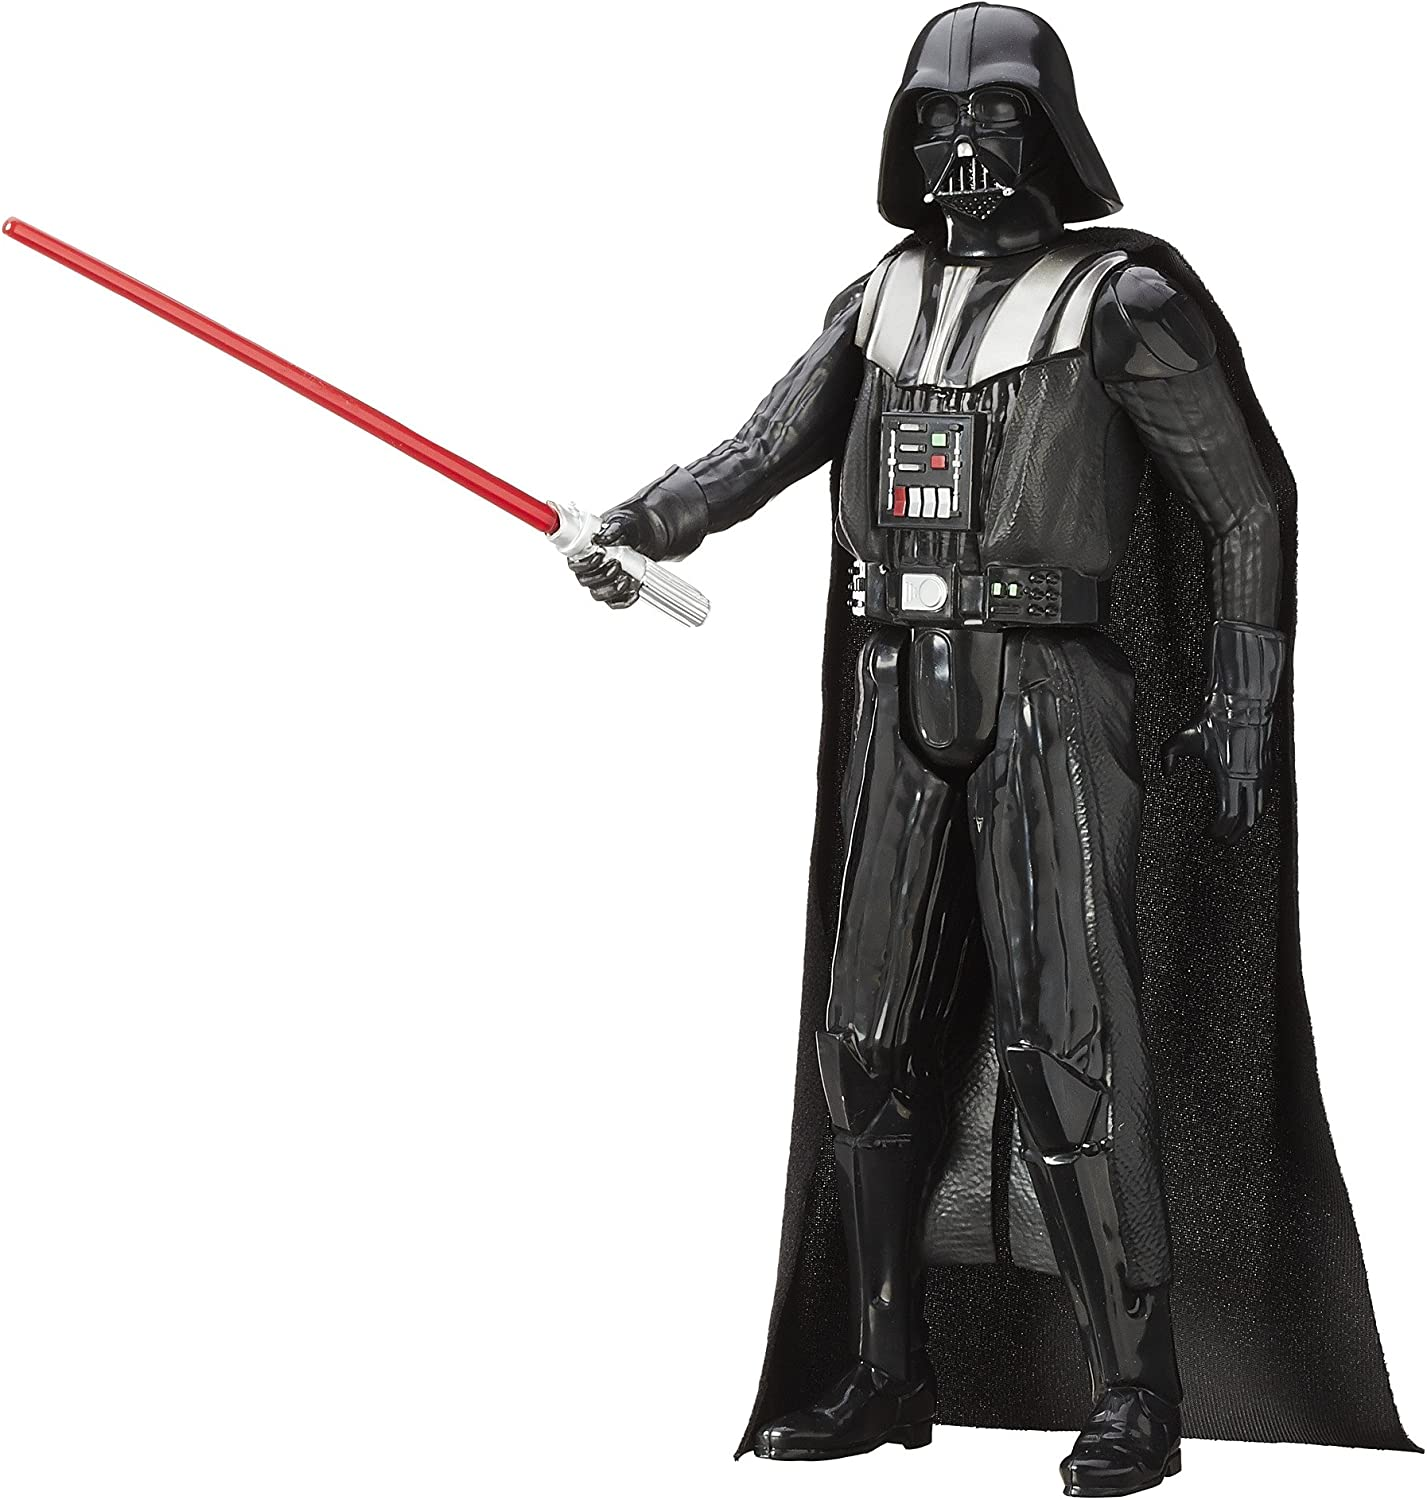 Amazon Com Star Wars Revenge Of The Sith 12 Inch Darth Vader Toys Games